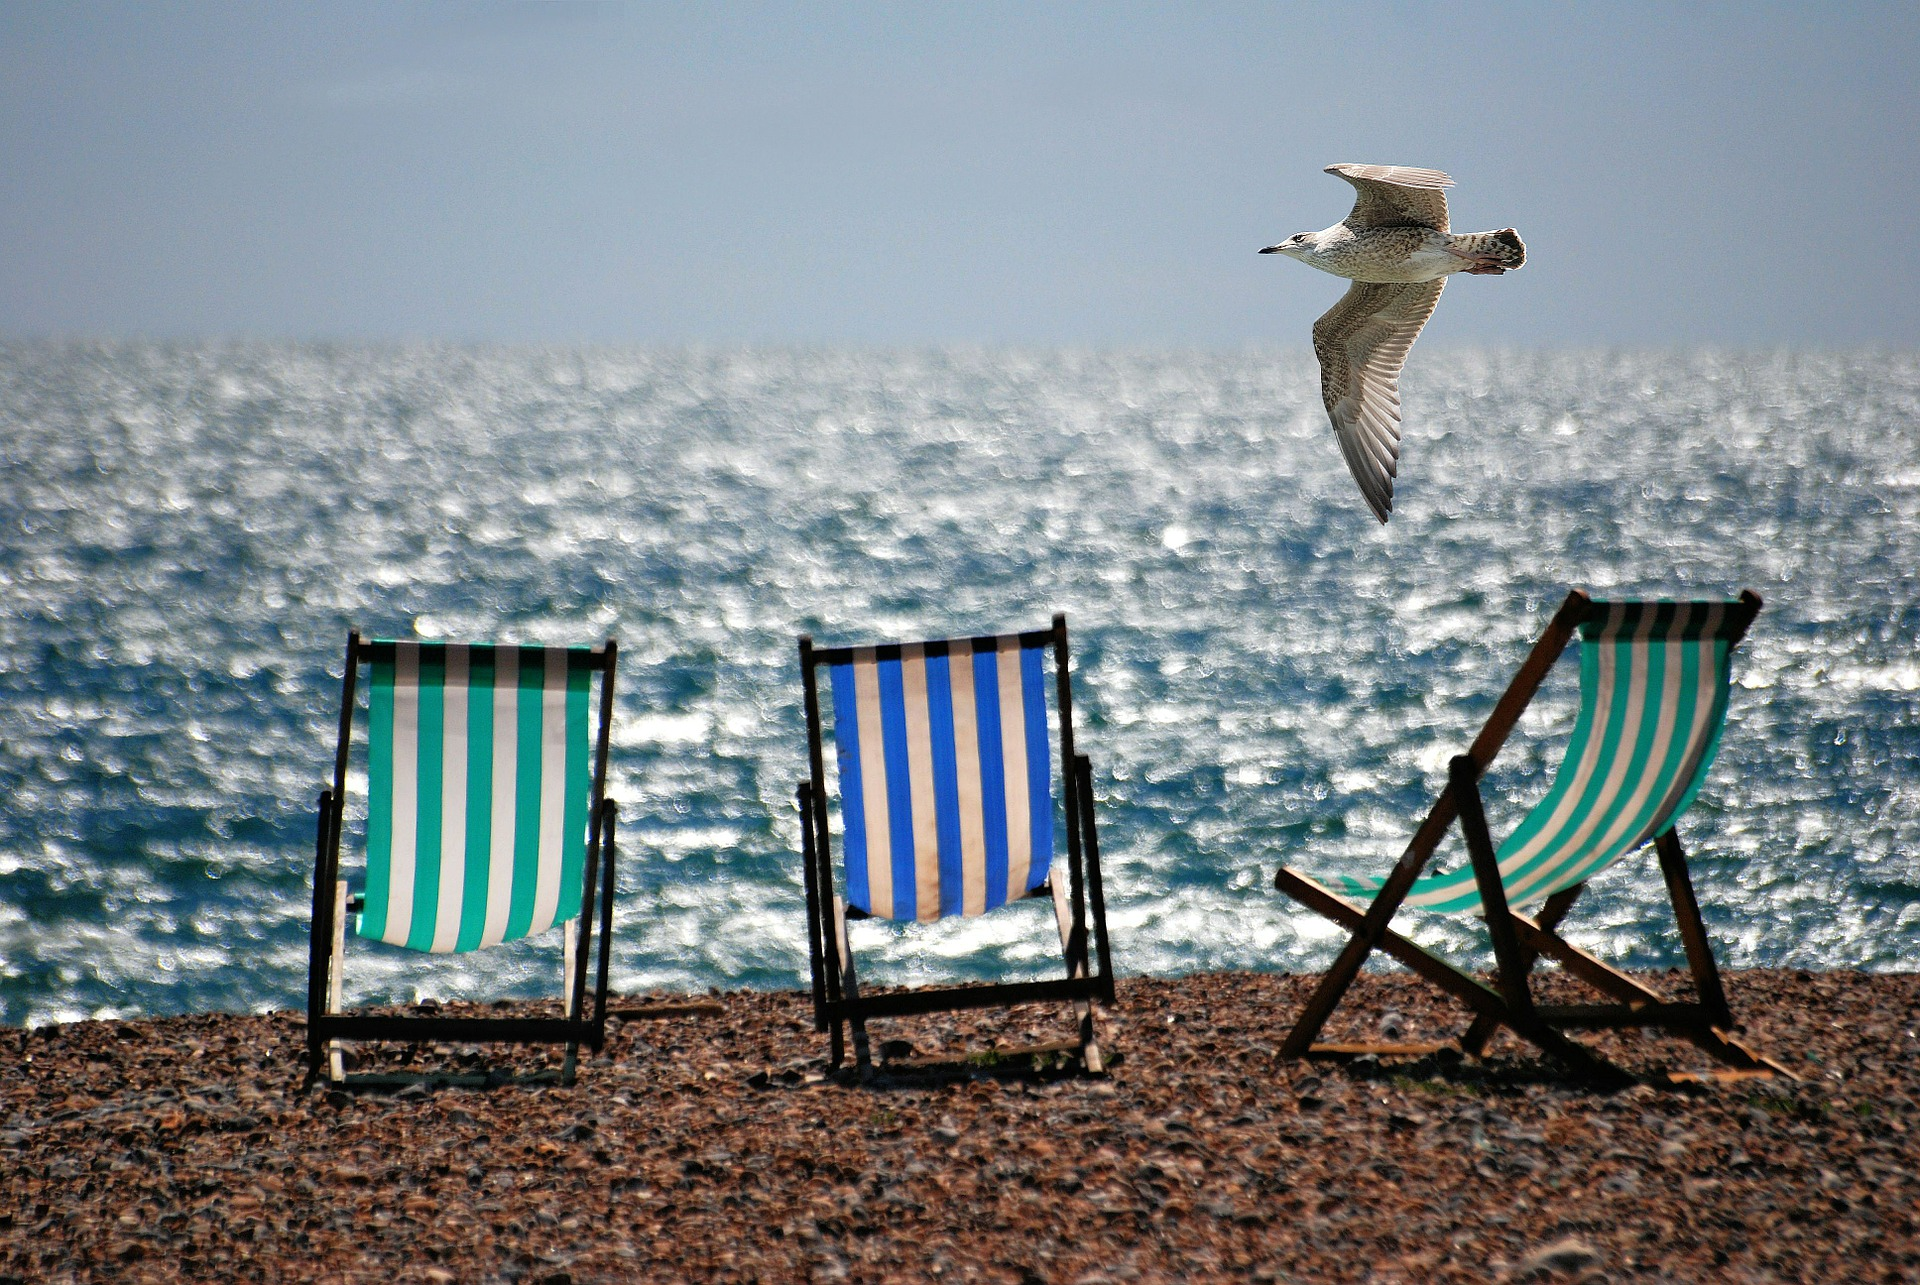 Deckchairs at the beach.